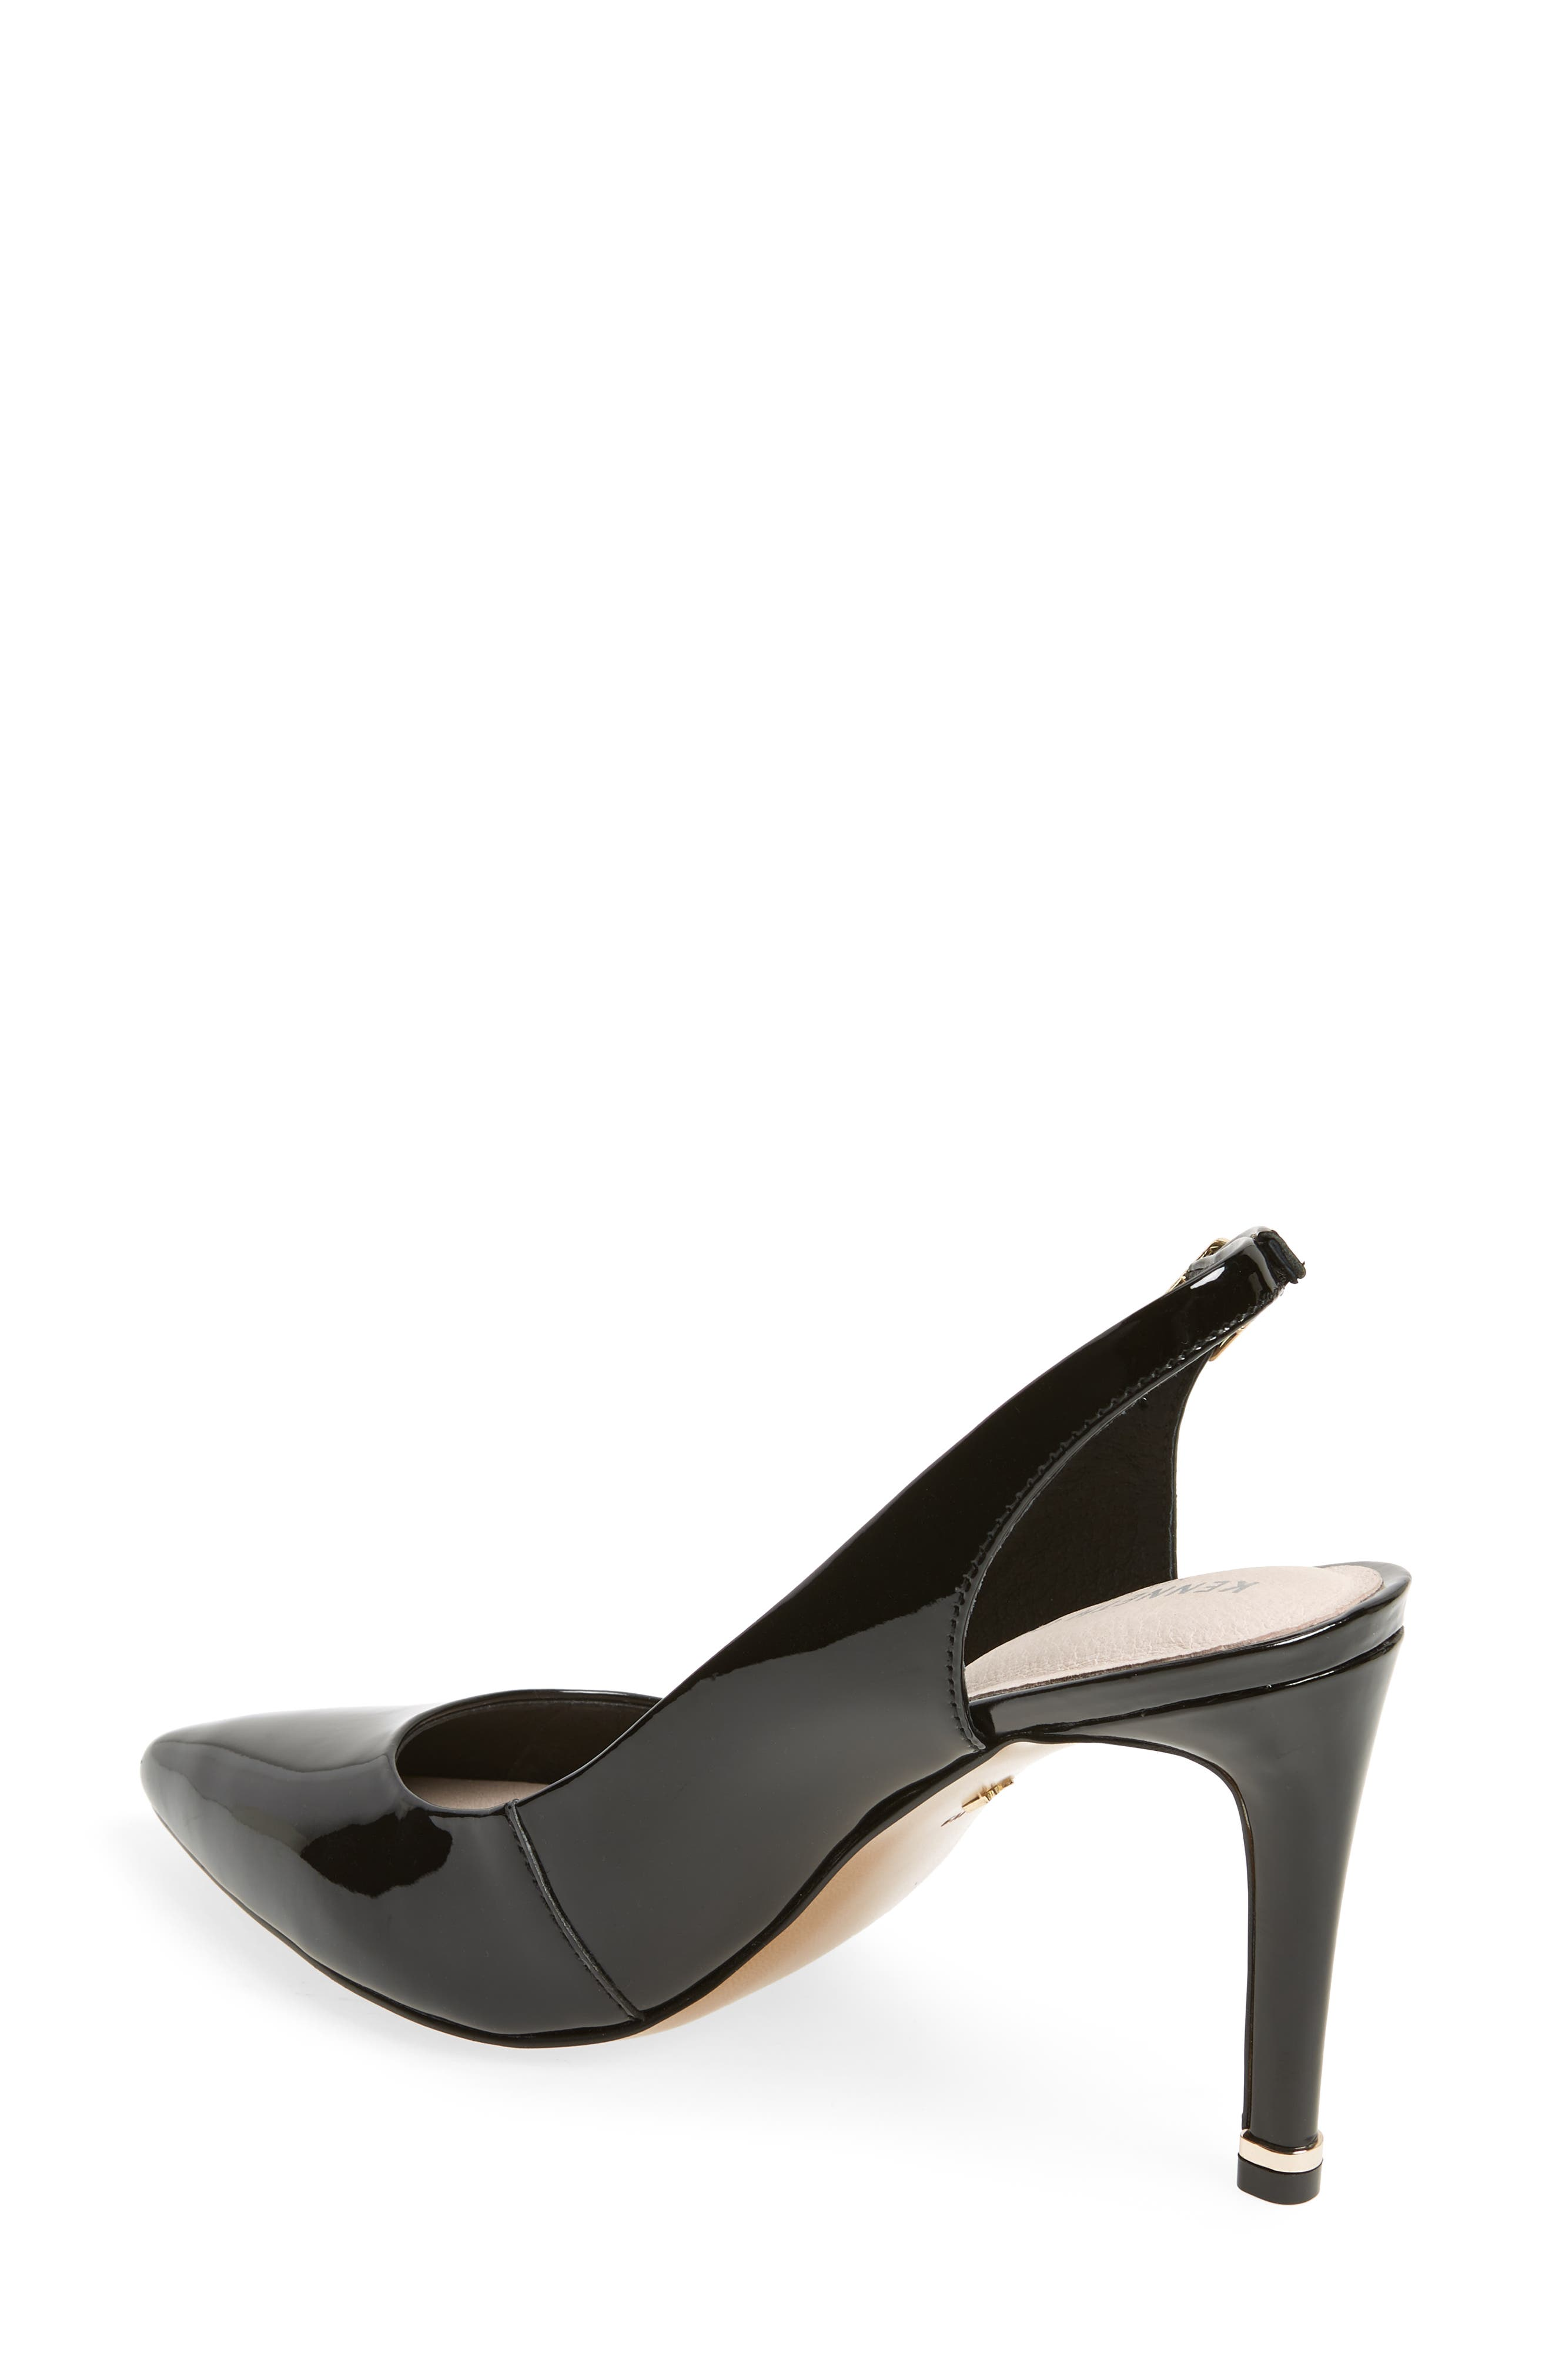 KENNETH COLE NEW YORK,                             Riley 85 Slingback Pump,                             Alternate thumbnail 2, color,                             BLACK PATENT LEATHER